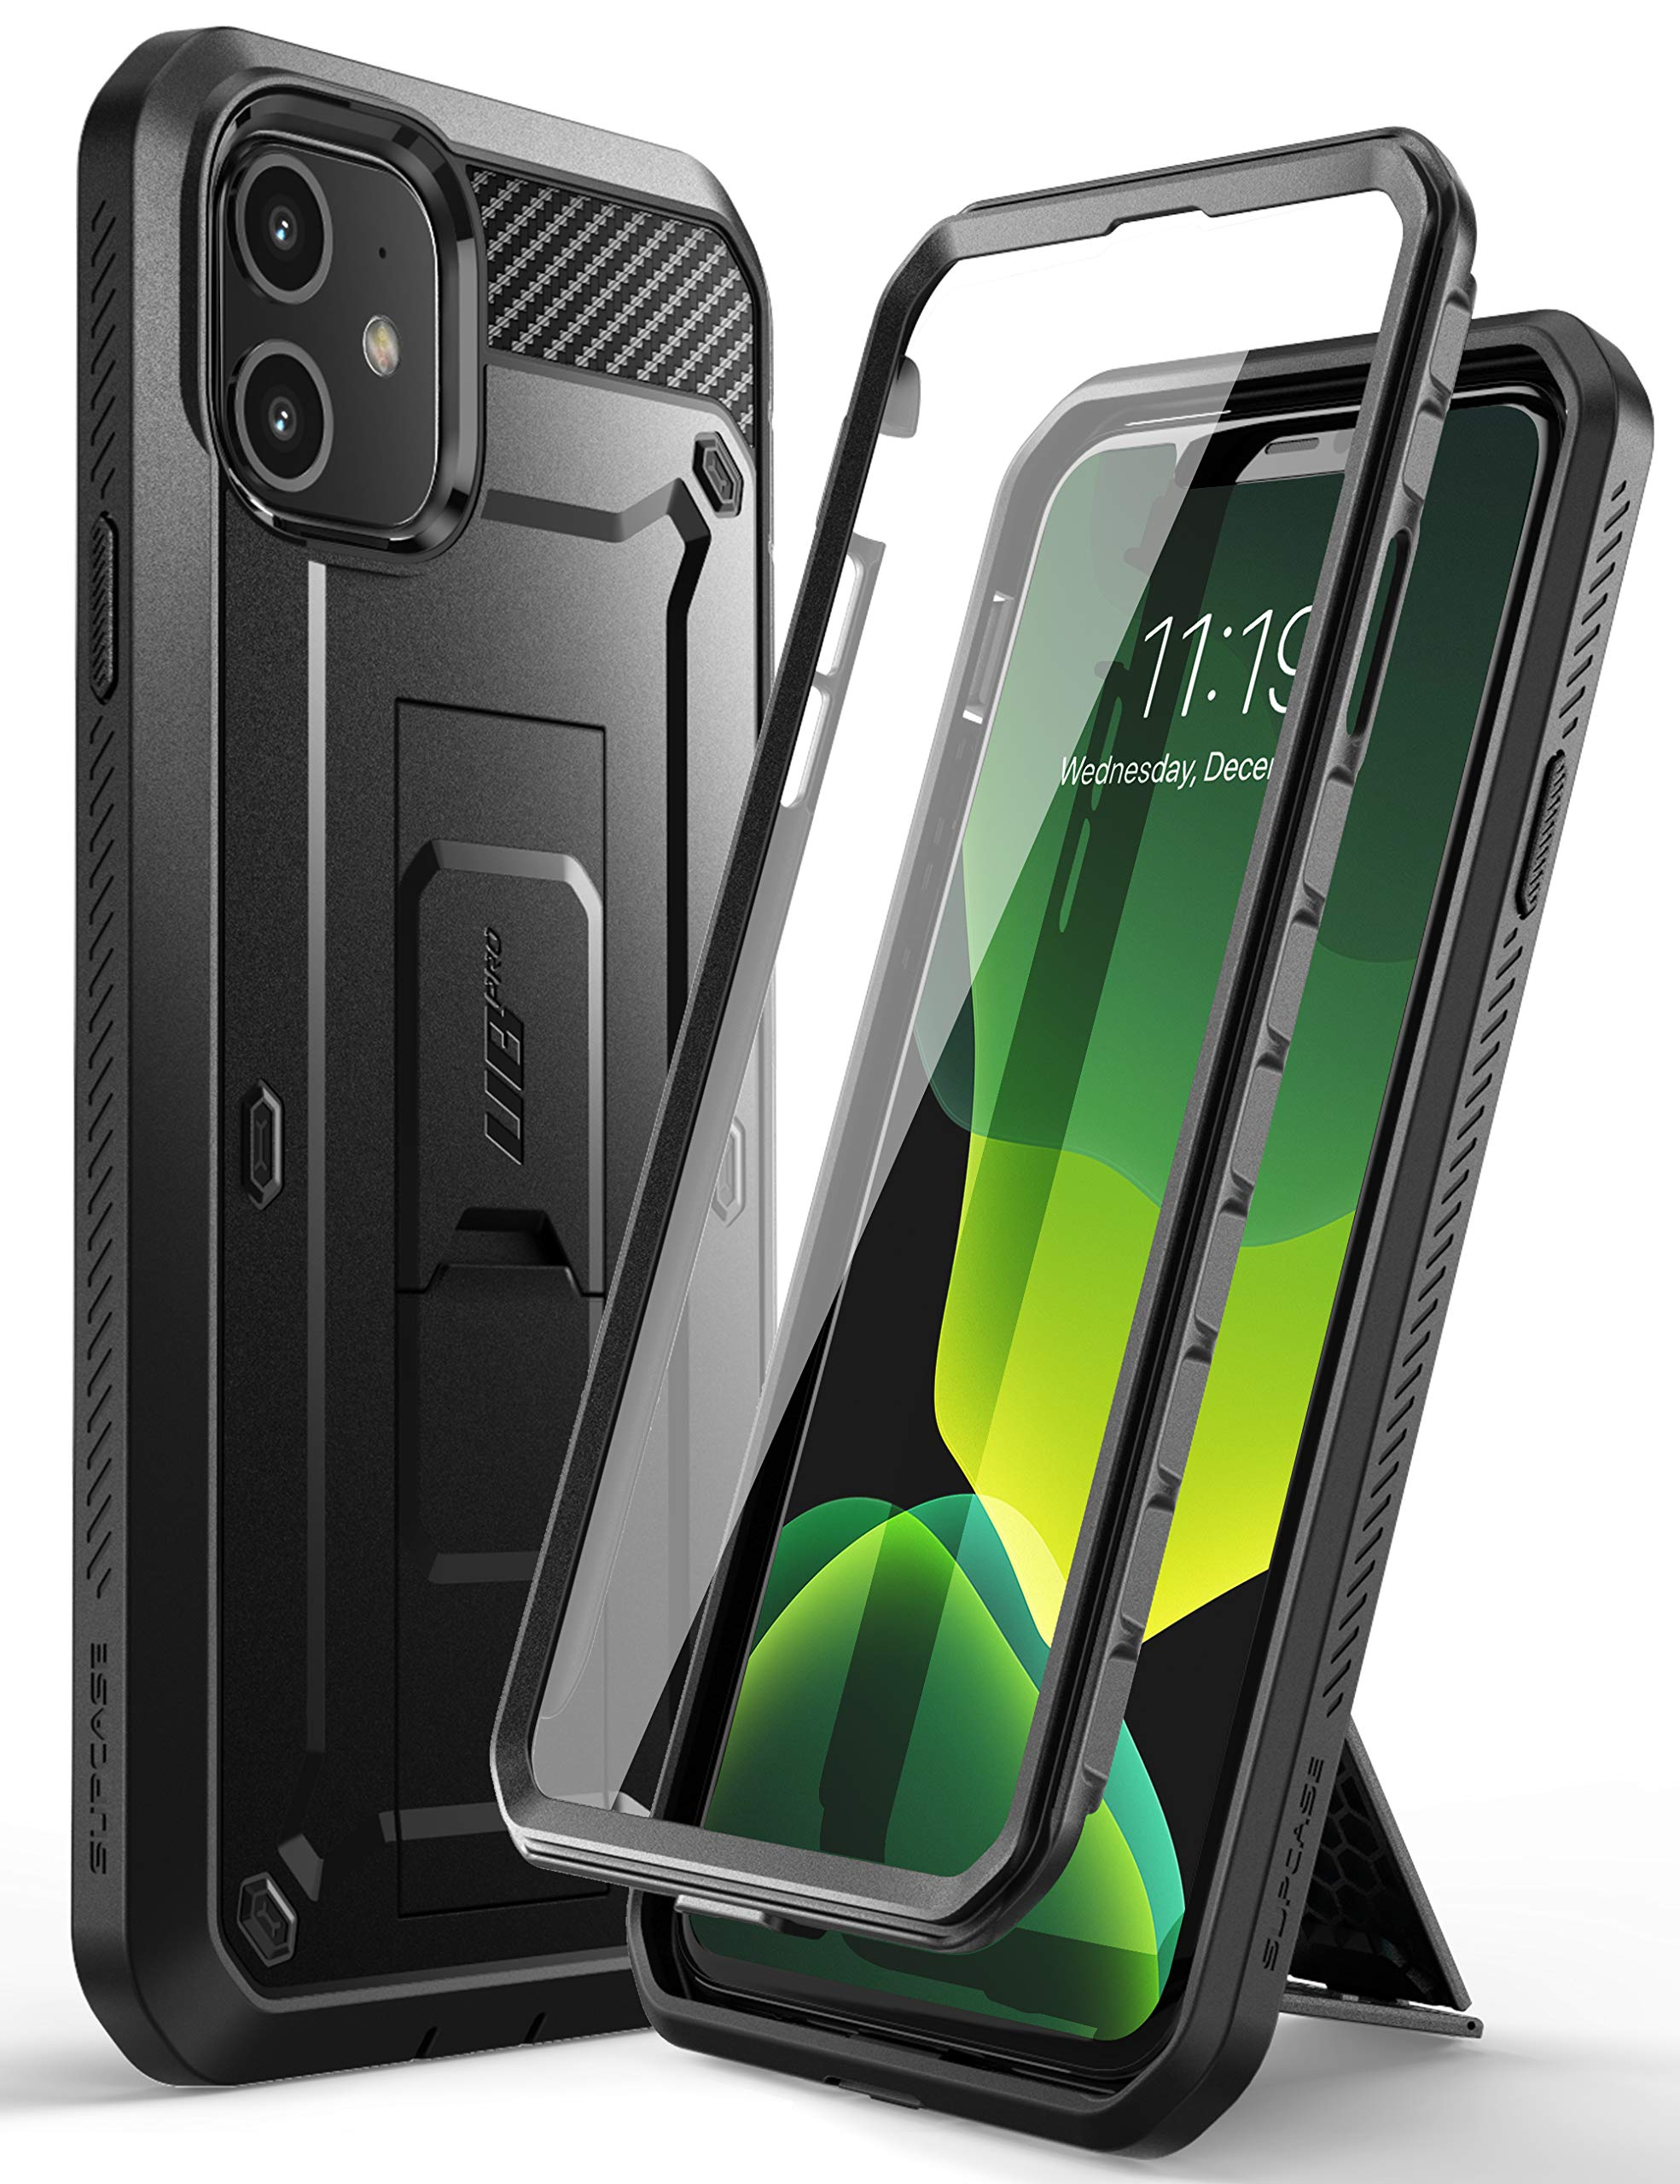 SUPCASE [Unicorn Beetle Pro Series] Case Cover Compatible with iPhone 11 6.1 Inch (2019 Release), Built-in Screen Protector Full-Body Rugged Holster Case (Black) (B07W5PV19Y) Amazon Price History, Amazon Price Tracker